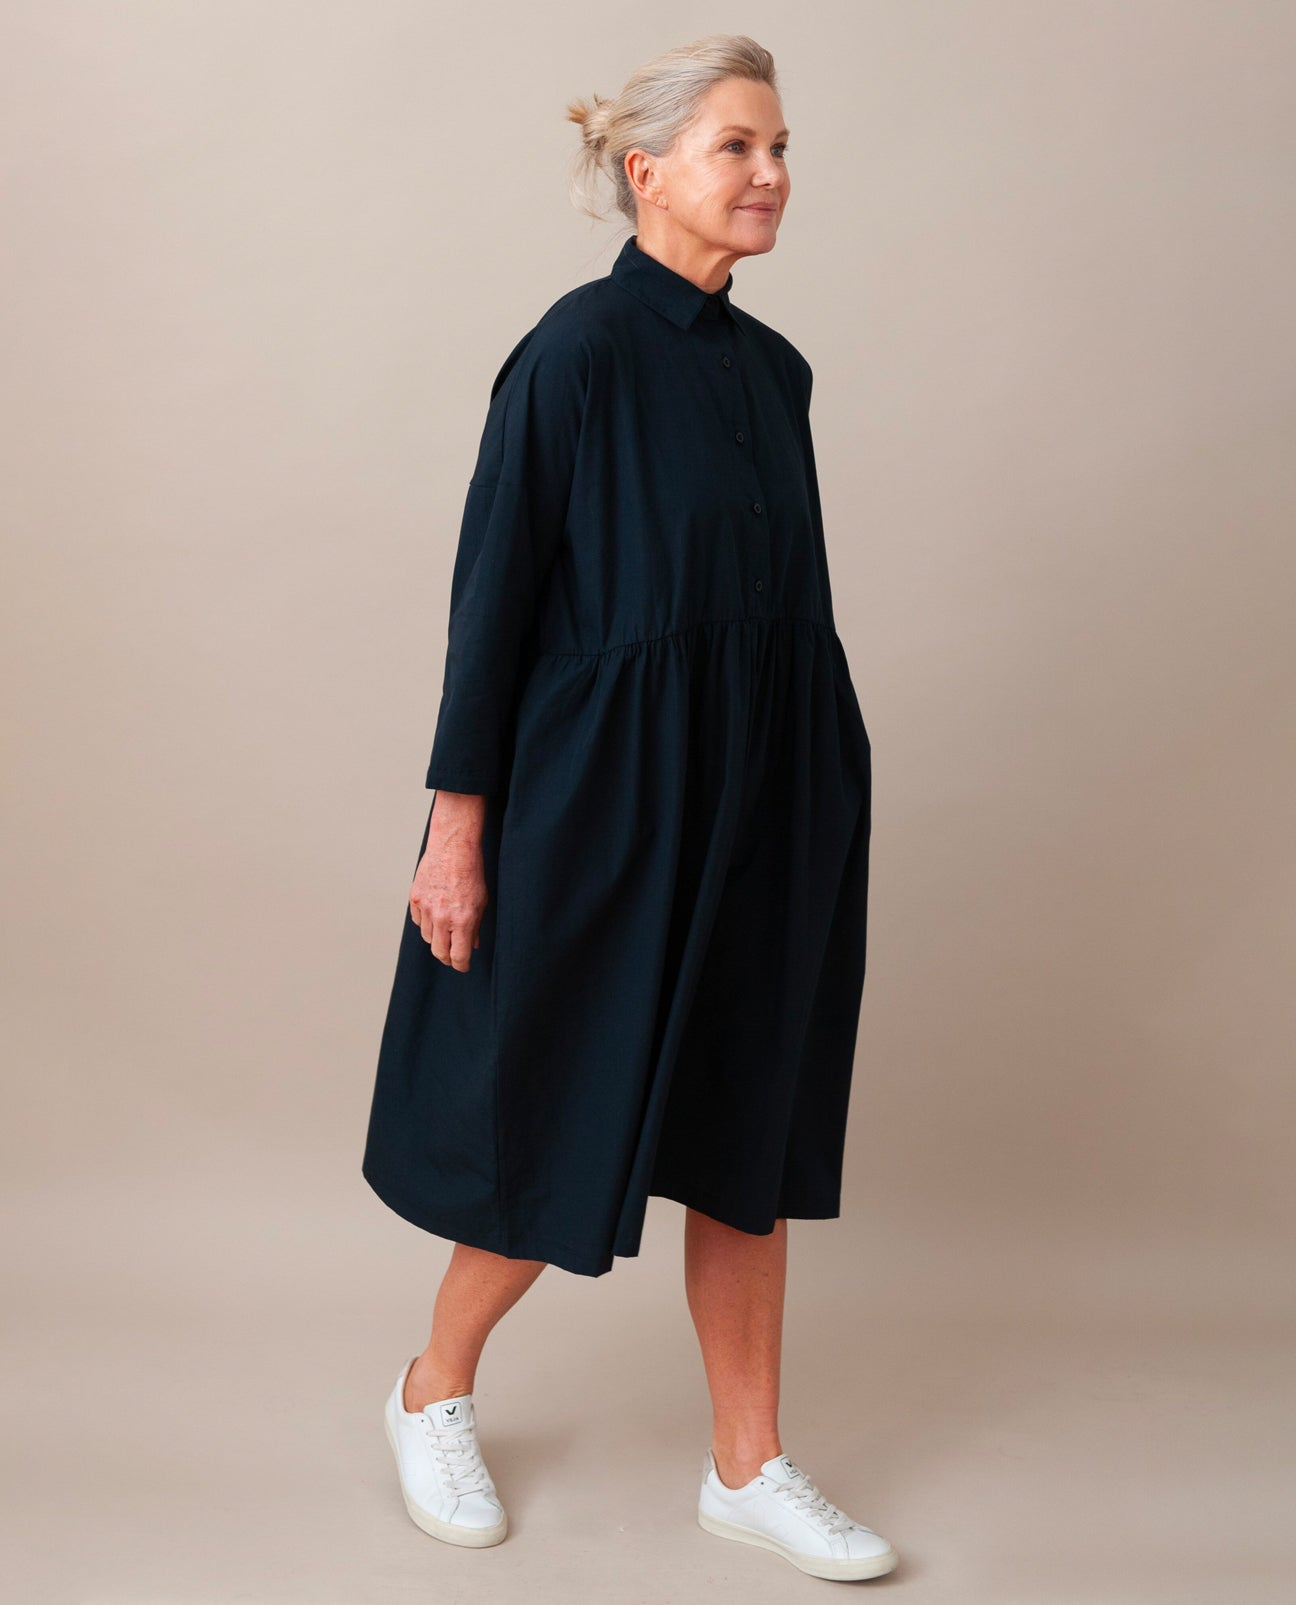 MARGE Organic Cotton Dress In Deep Indigo